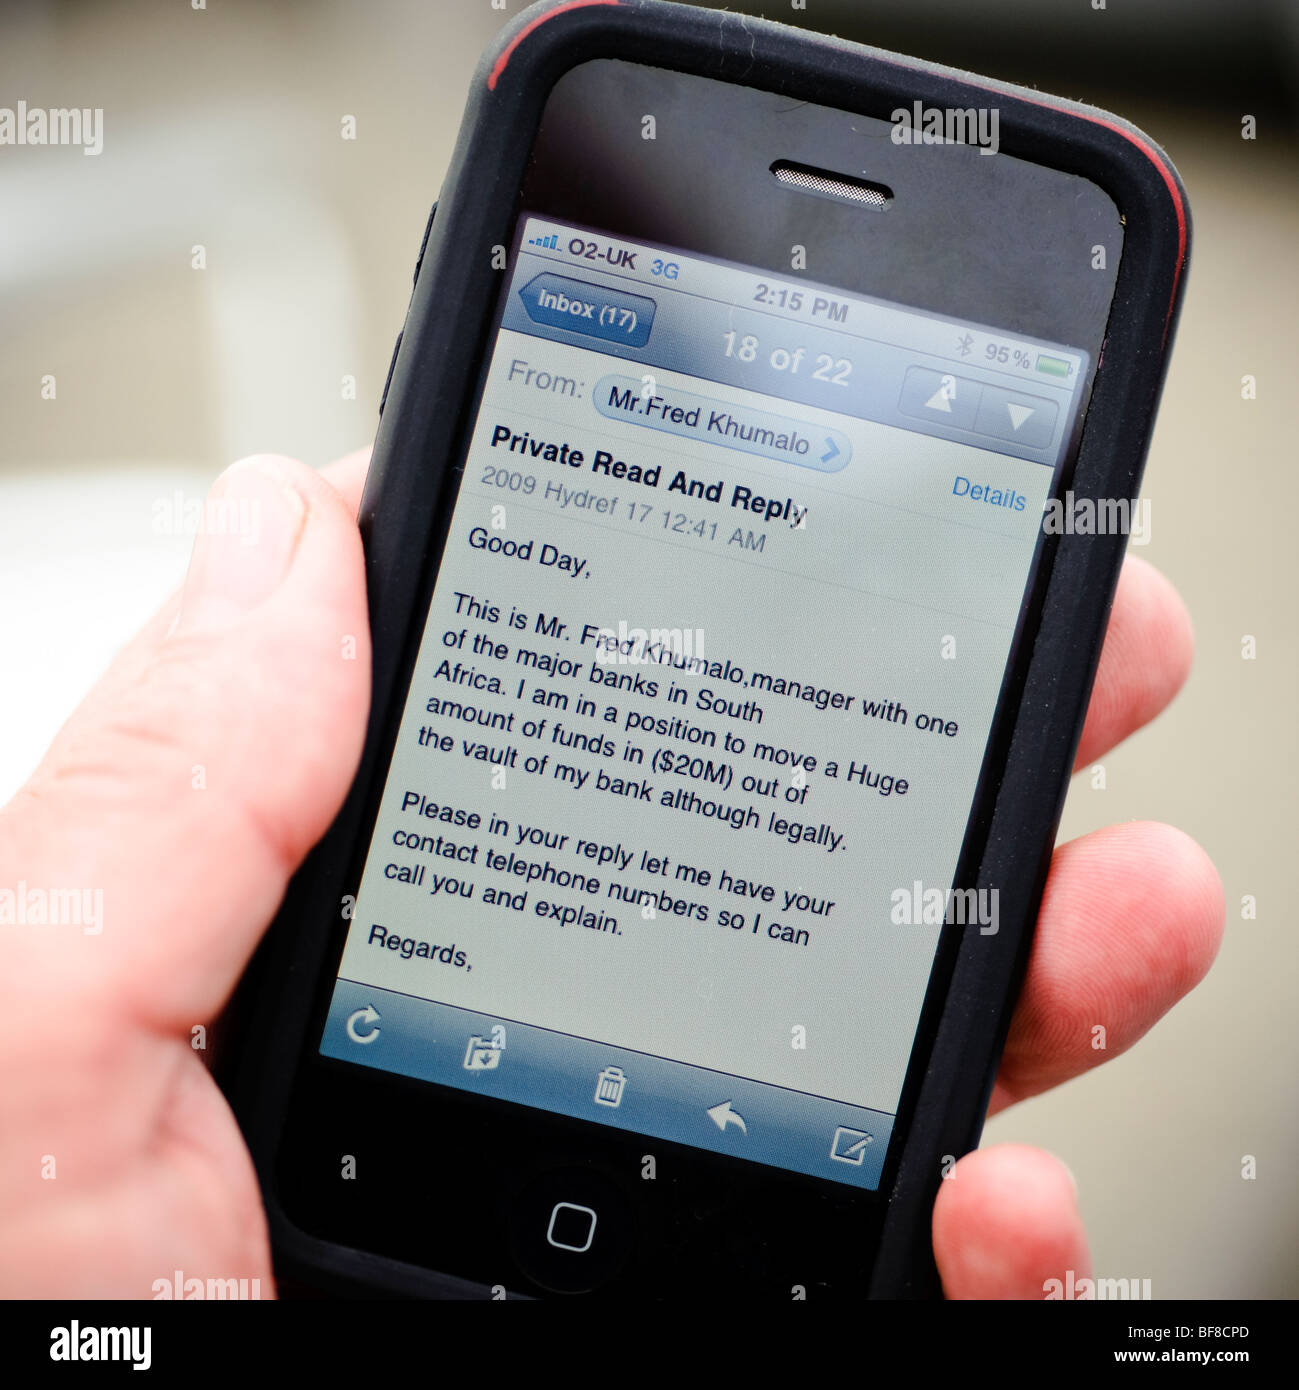 reading a phishing email fraud scam letter on an apple iPhone, UK - Stock Image